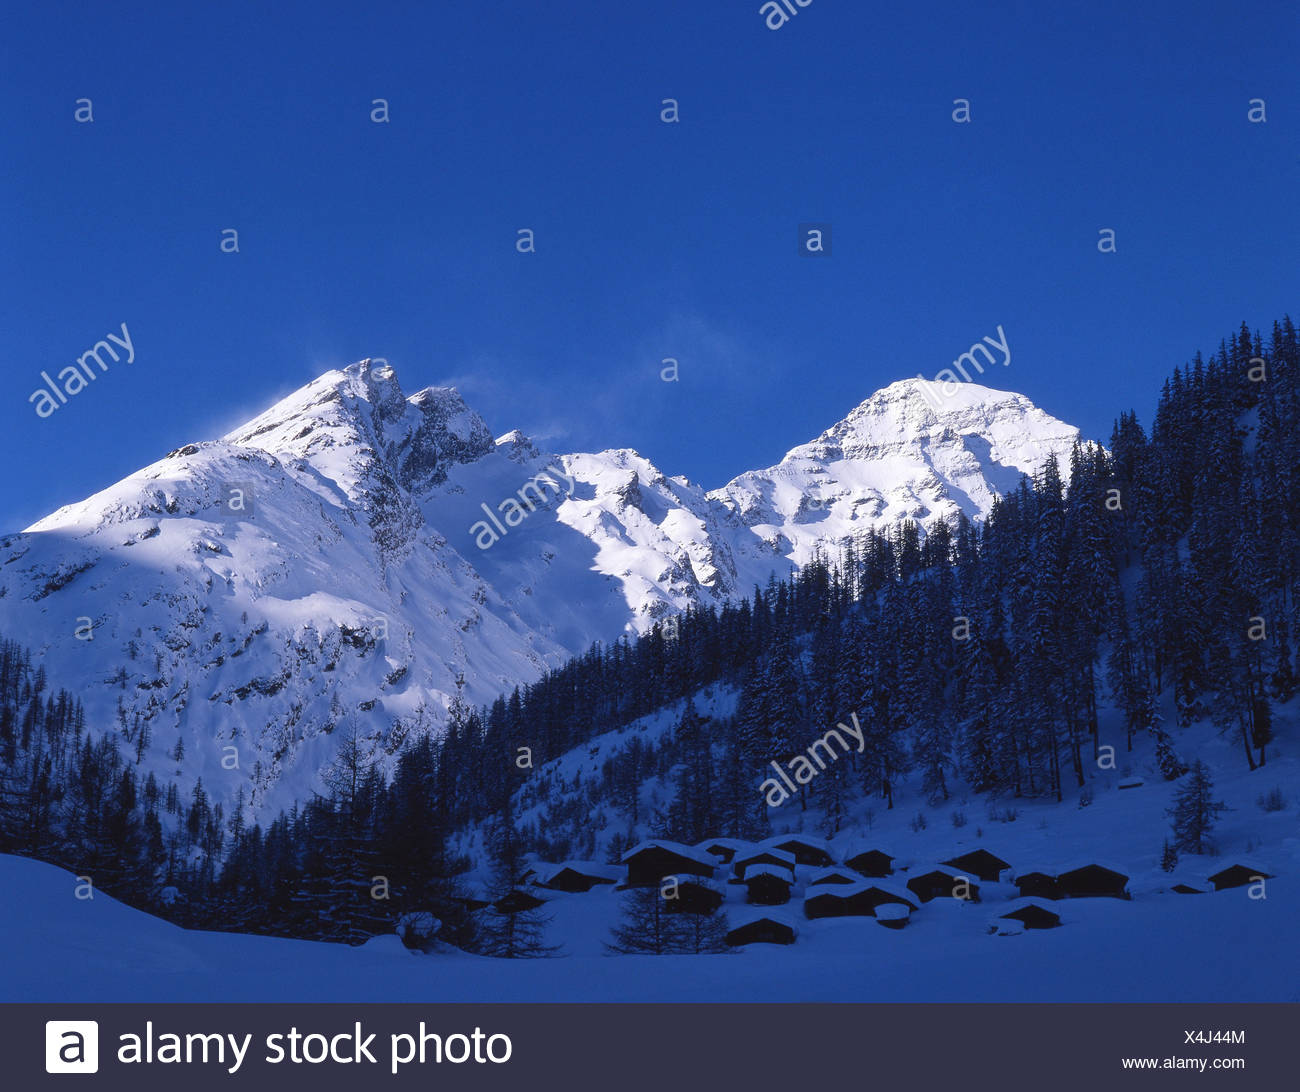 Lotschental Fafleralp hamlet settlement shade winter snow mountains Alps dusk twilight mood canton Valais - Stock Image